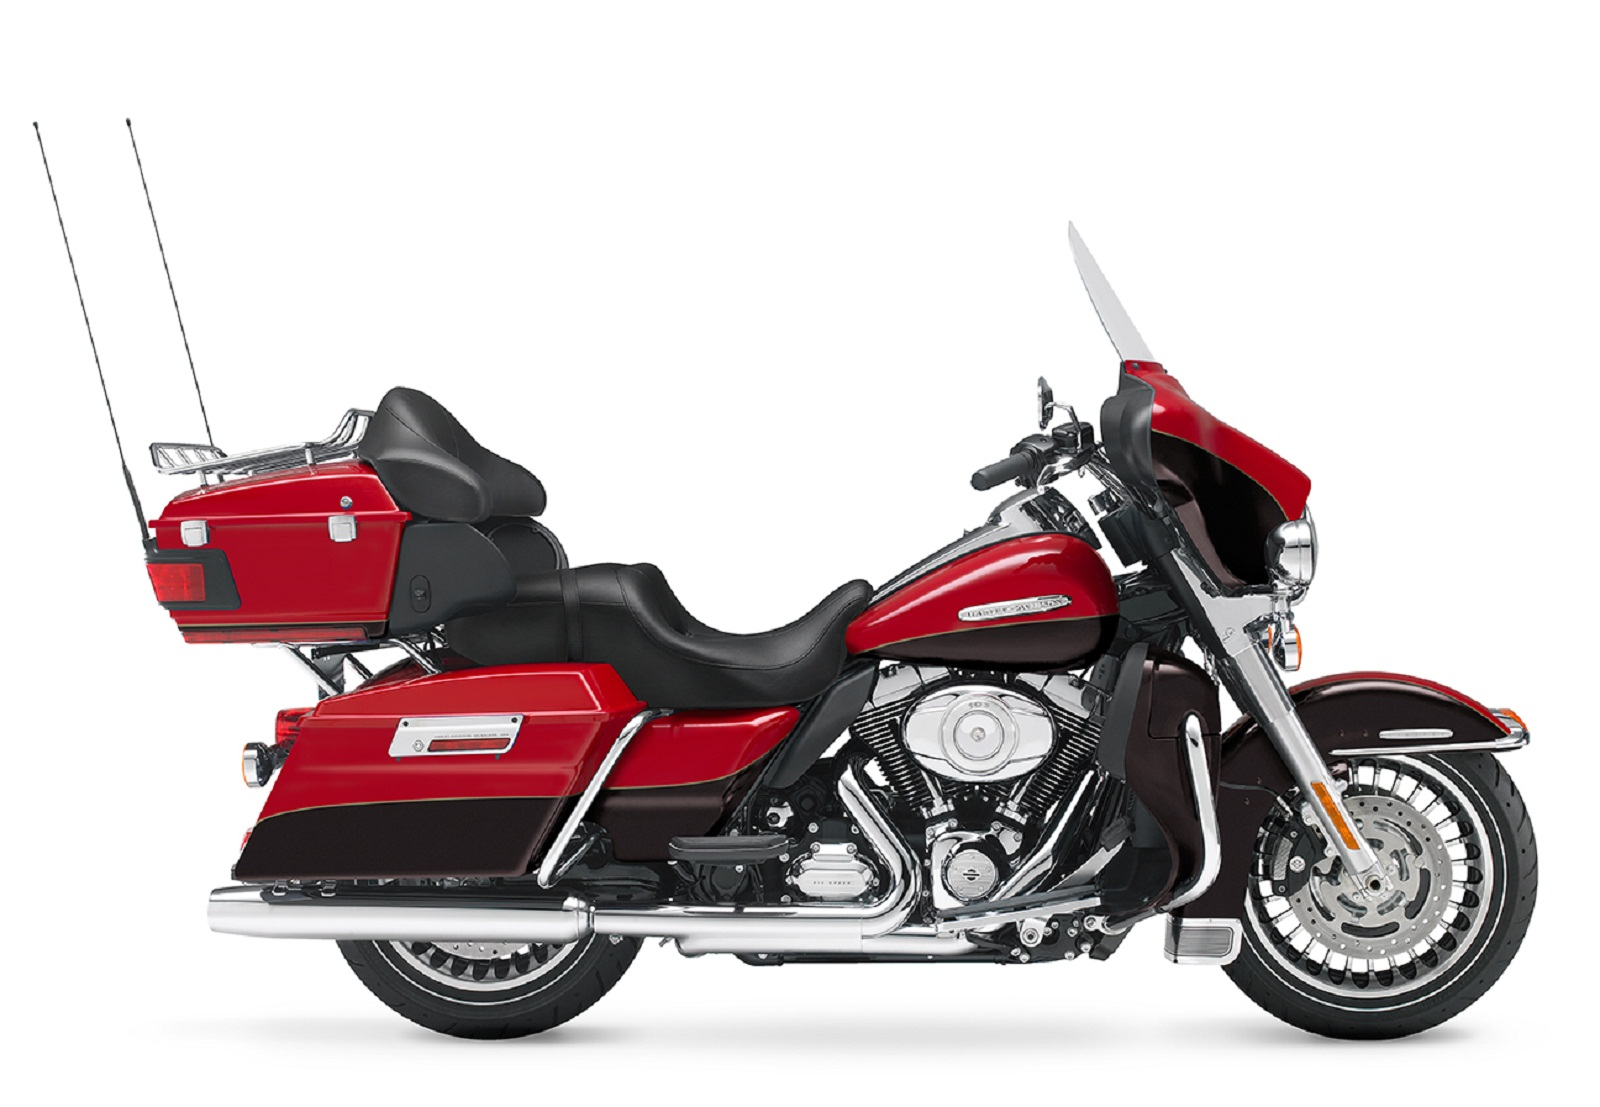 2012 Harley-Davidson FLHTK Electra Glide Ultra Limited | Top Speed. »